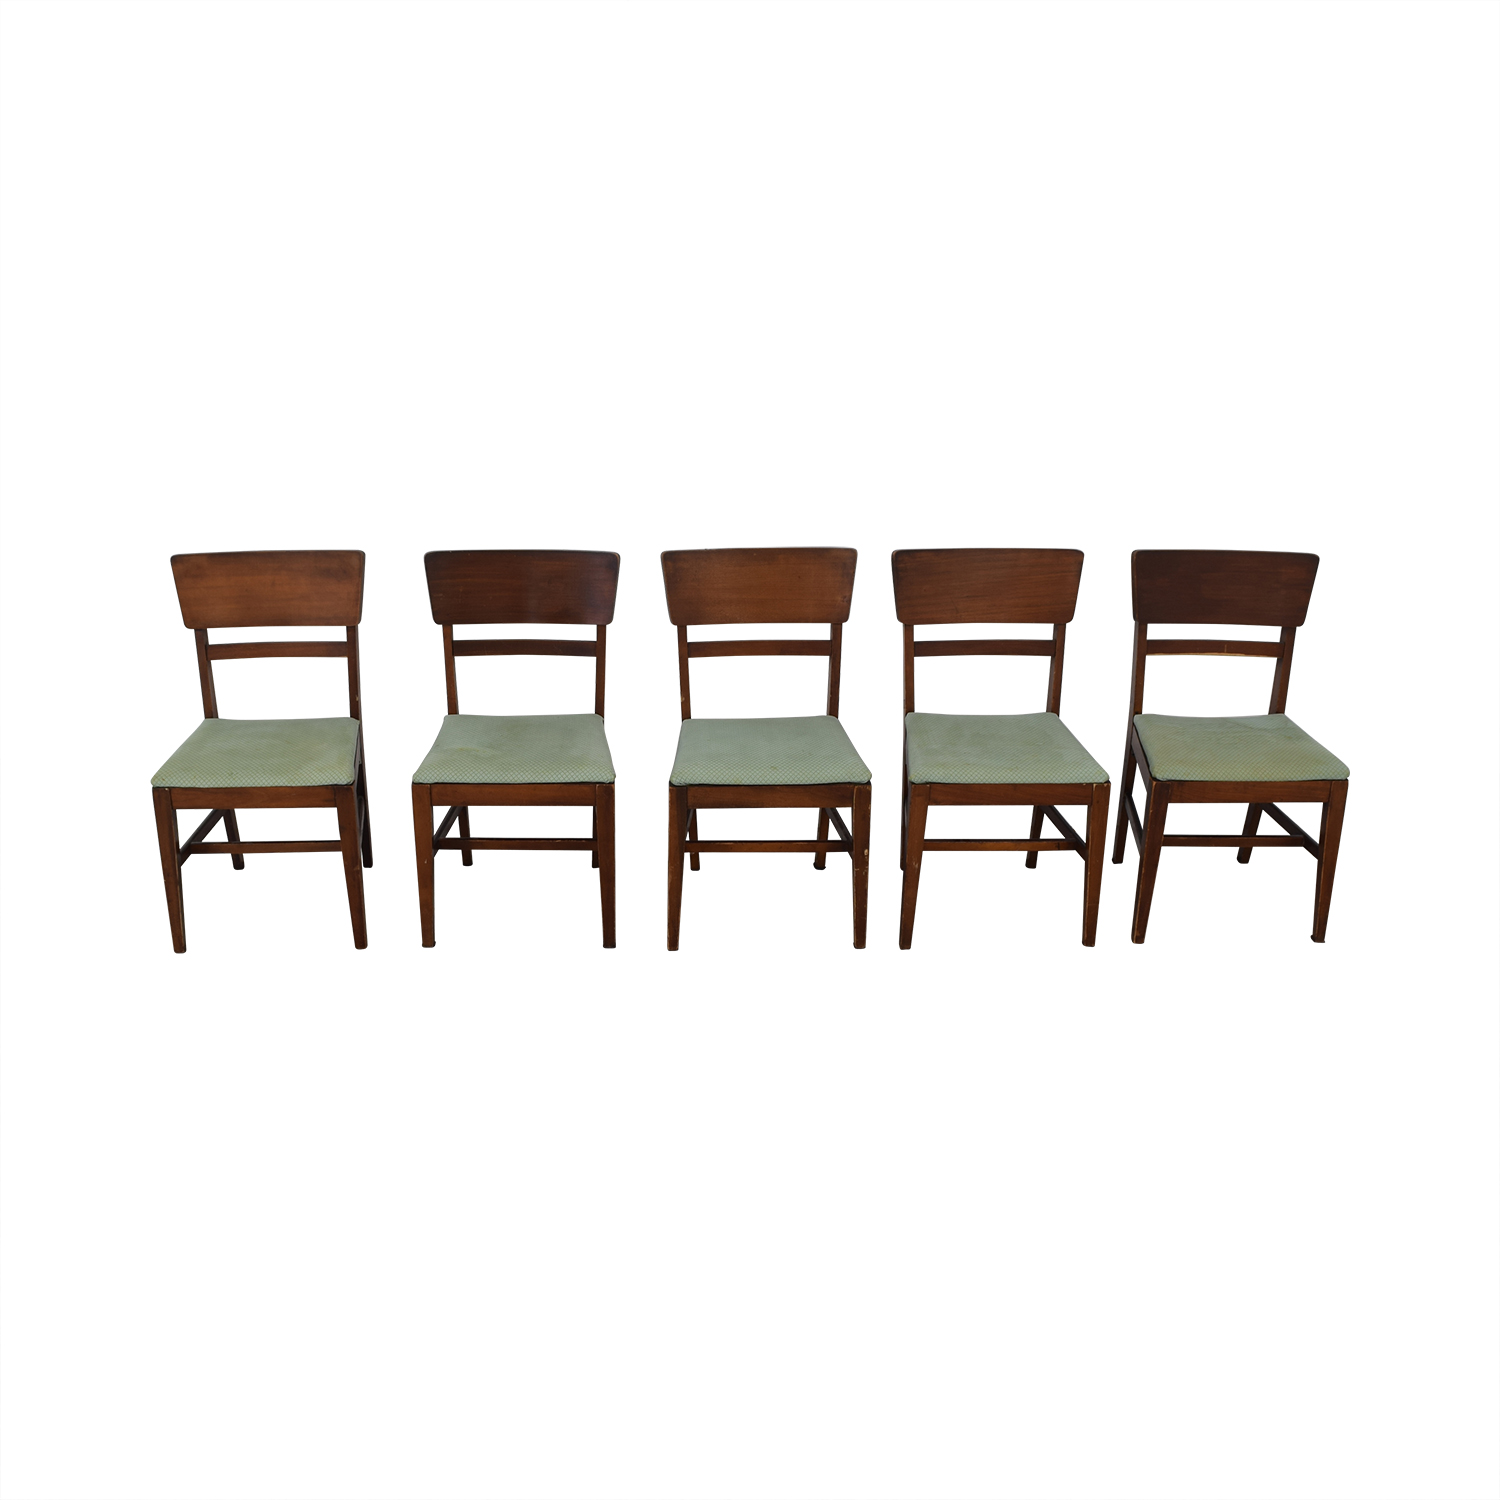 Contemporary Upholstered Dining Chairs dimensions